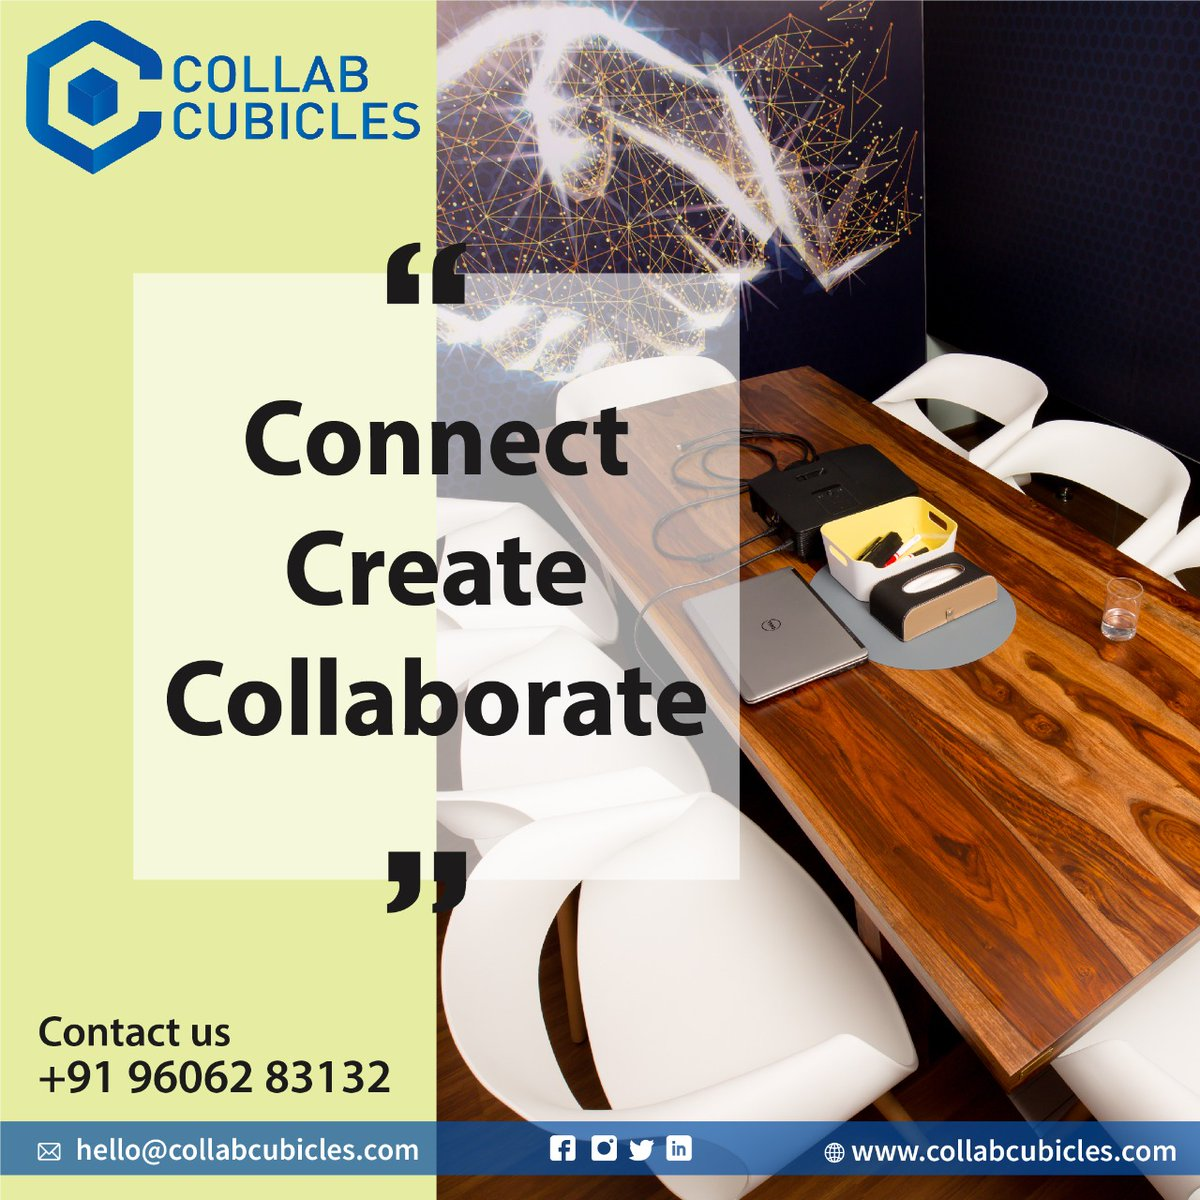 📷Changing the way to work with hustling environments and affordable budget. 👍 DM for #inquiries and more details.   #CollabCubicles #coworking #coworkingspace #business #startup #workspace #cowork #community #entrepreneur #office #work #affordable